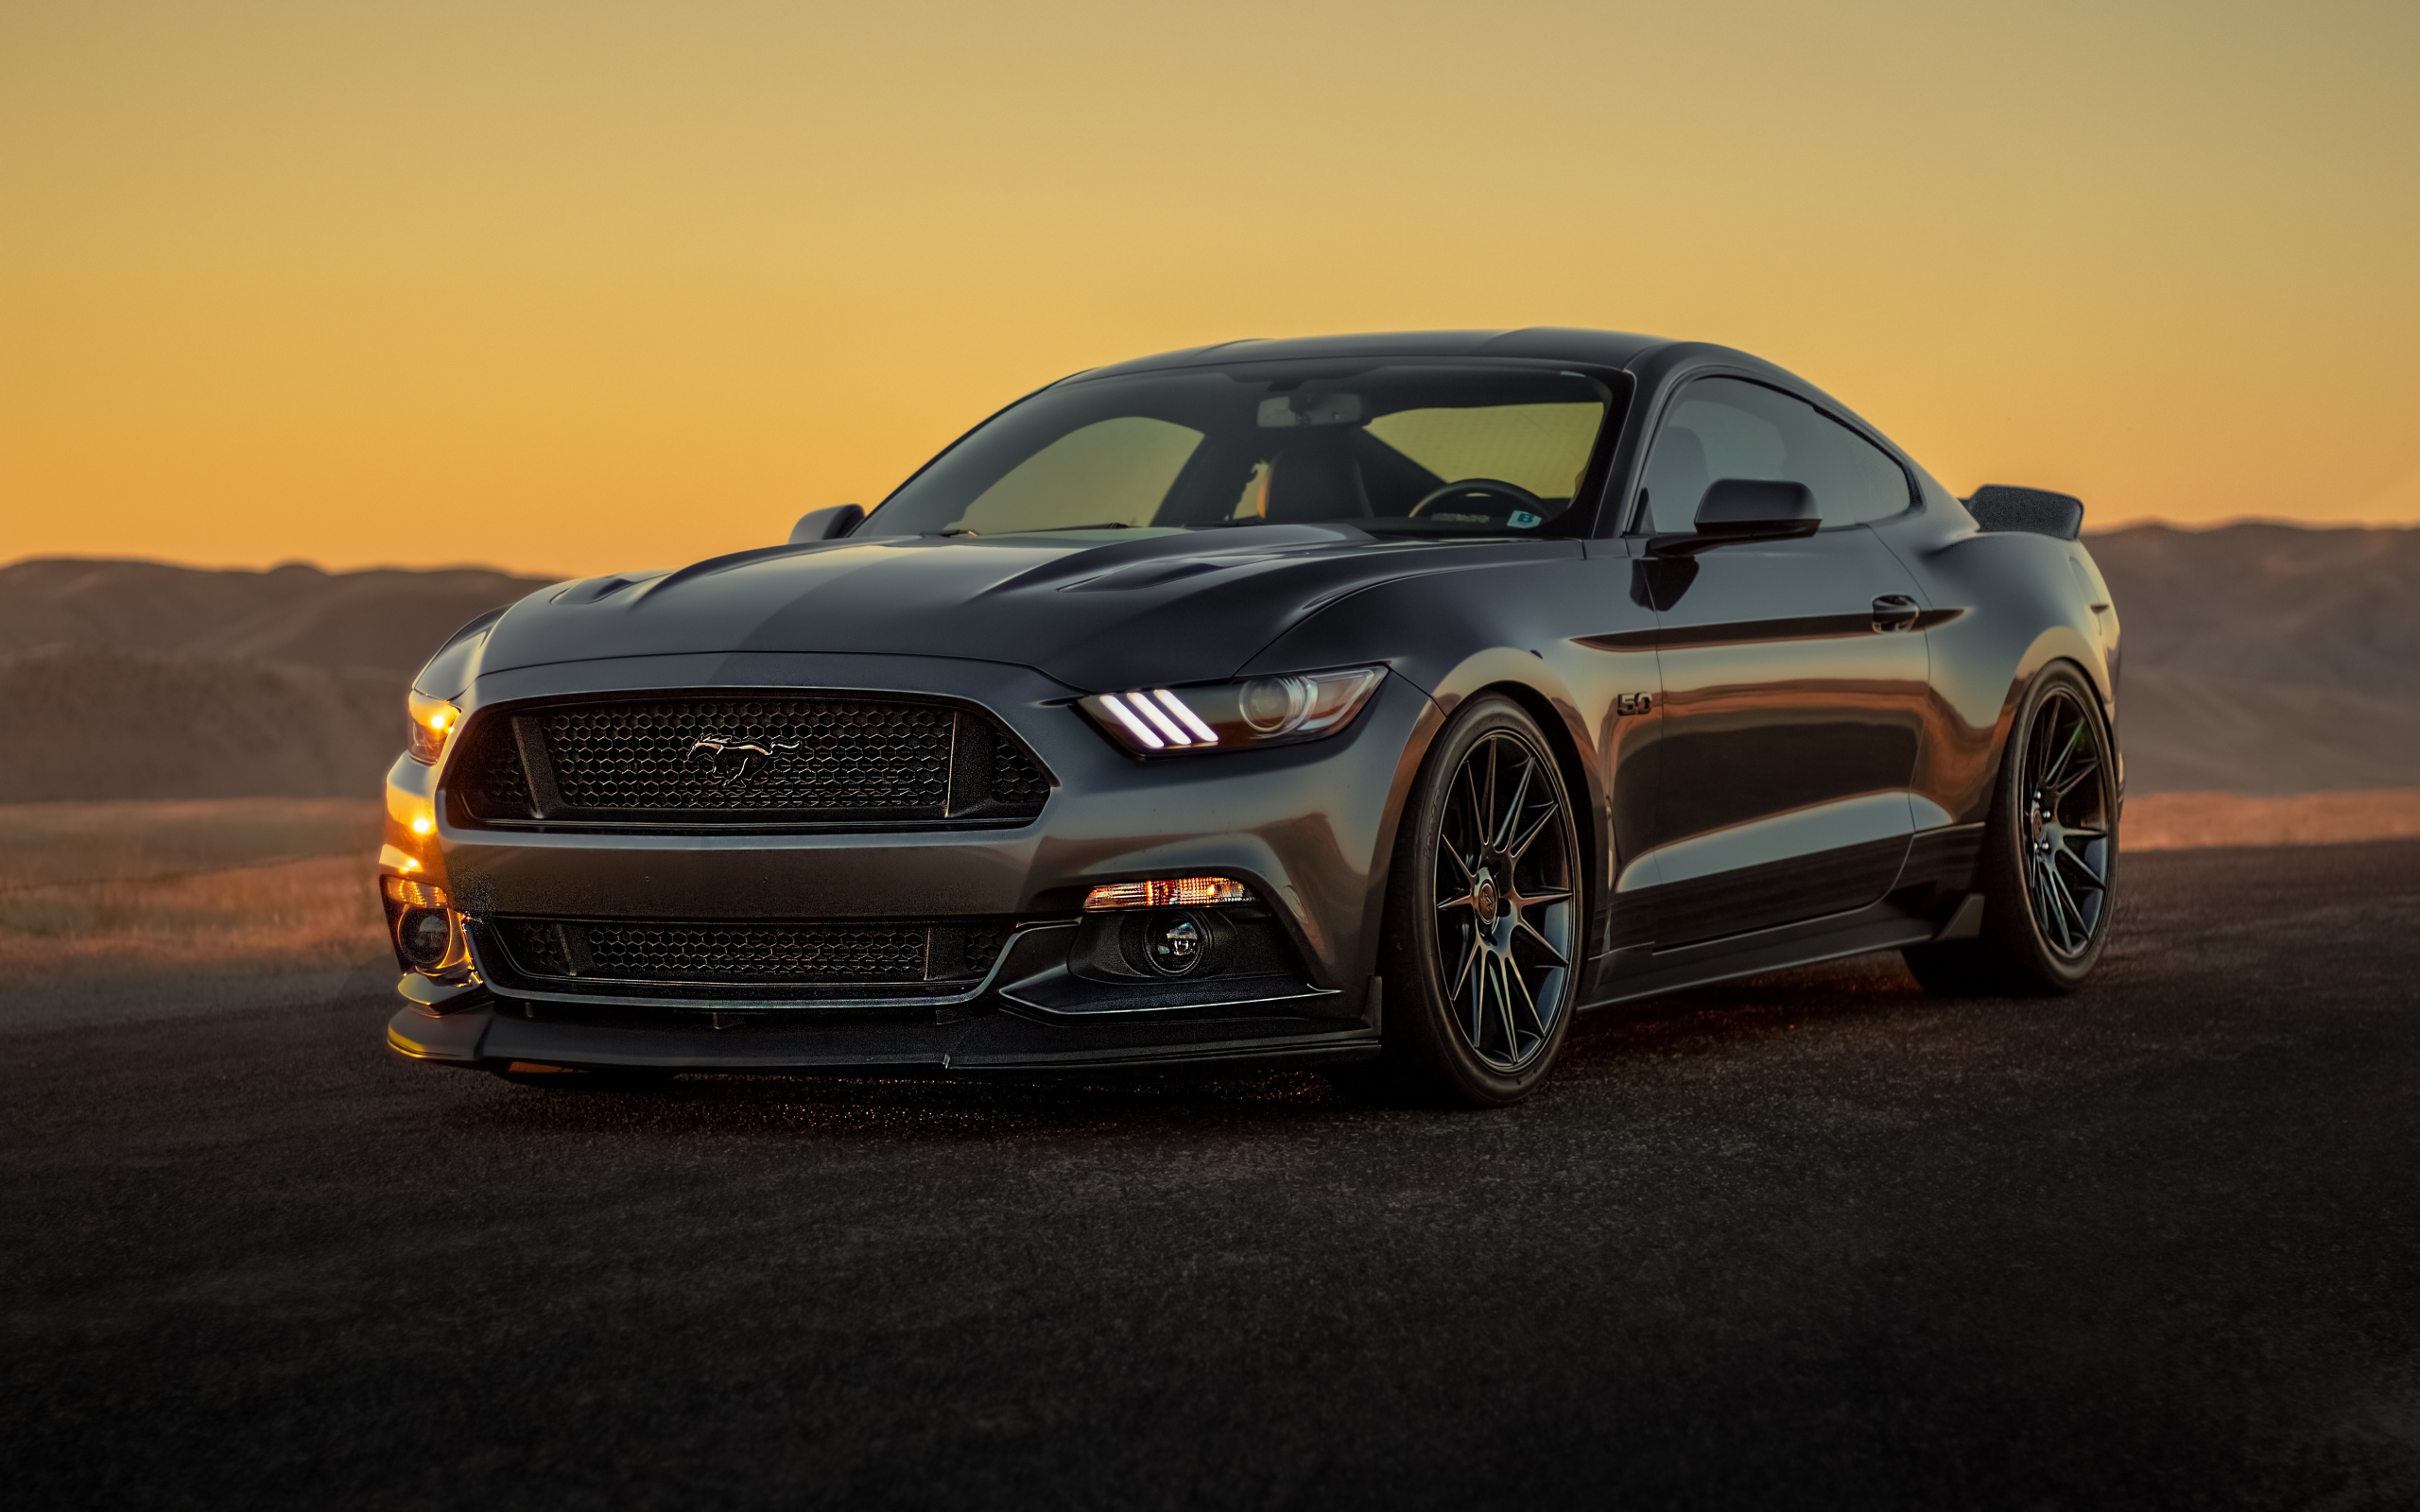 Wallpaper Of Ford Mustang Car Black Muscle Car Background